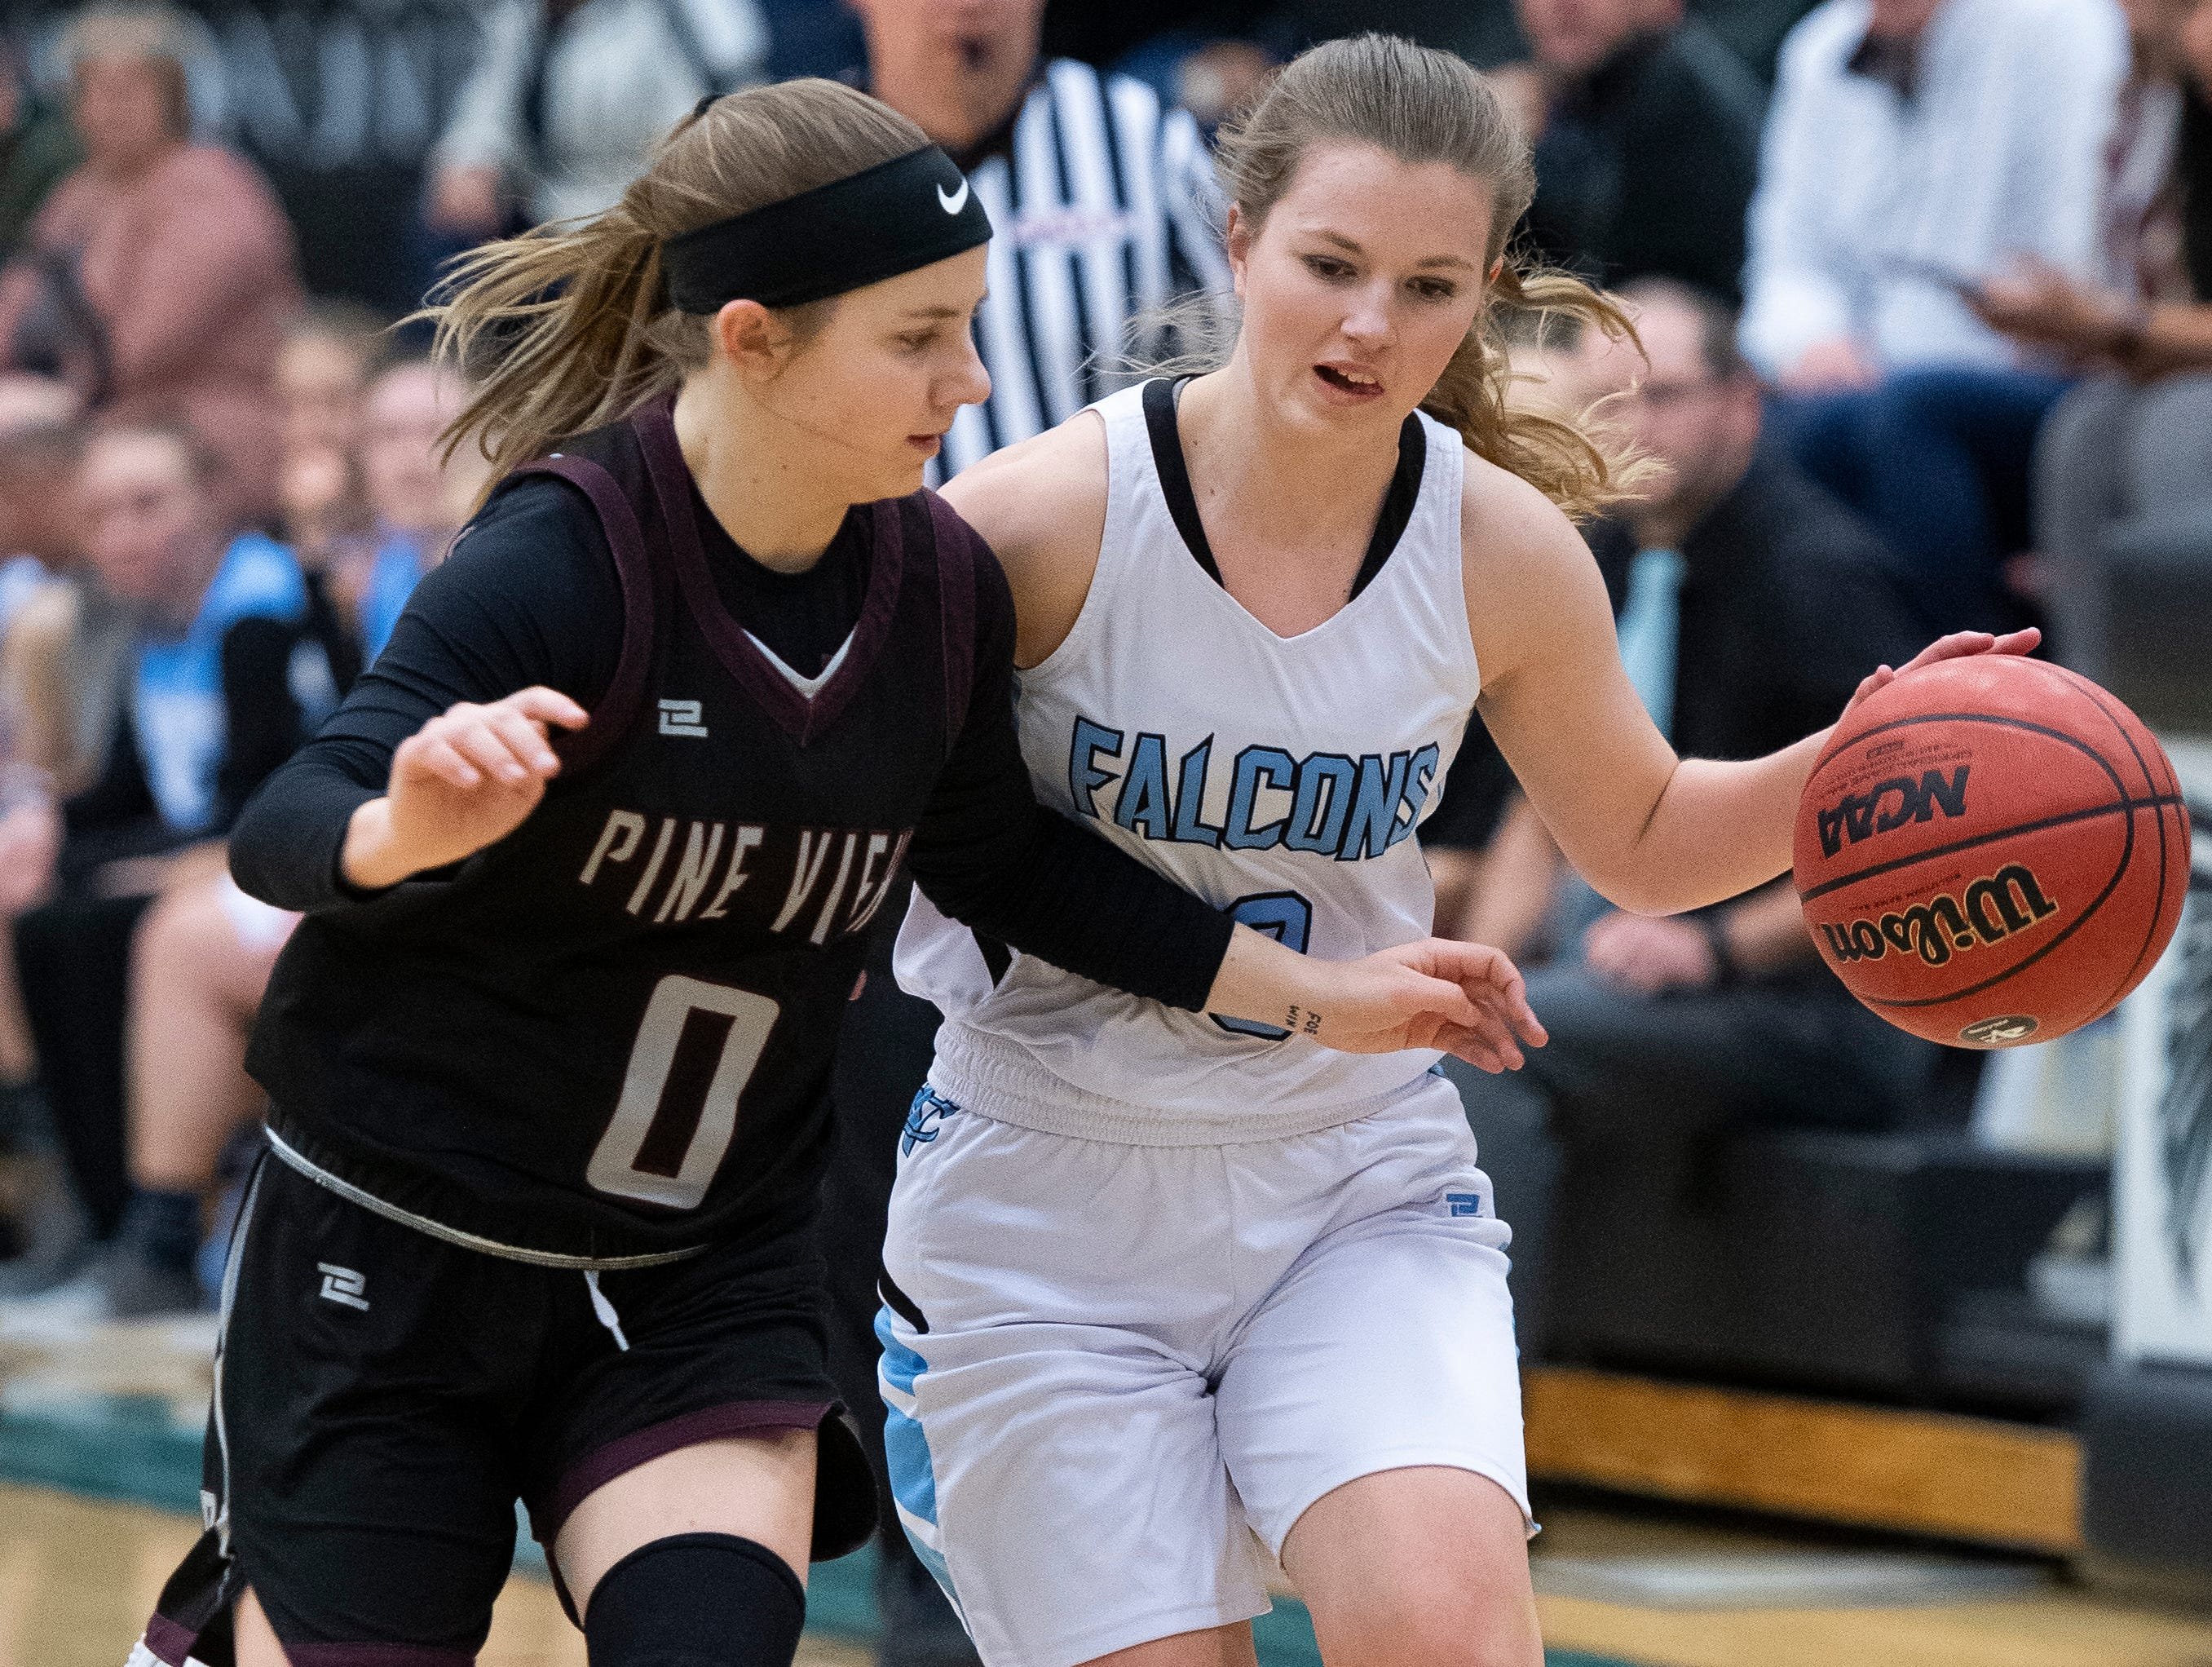 Pine View High School junior Sophia Jensen (0) and Canyon View High School senior Shayla Johnson (3) battle mid-court at CVHS Tuesday, January 15, 2019. The CVHS Falcons won, 48-46.